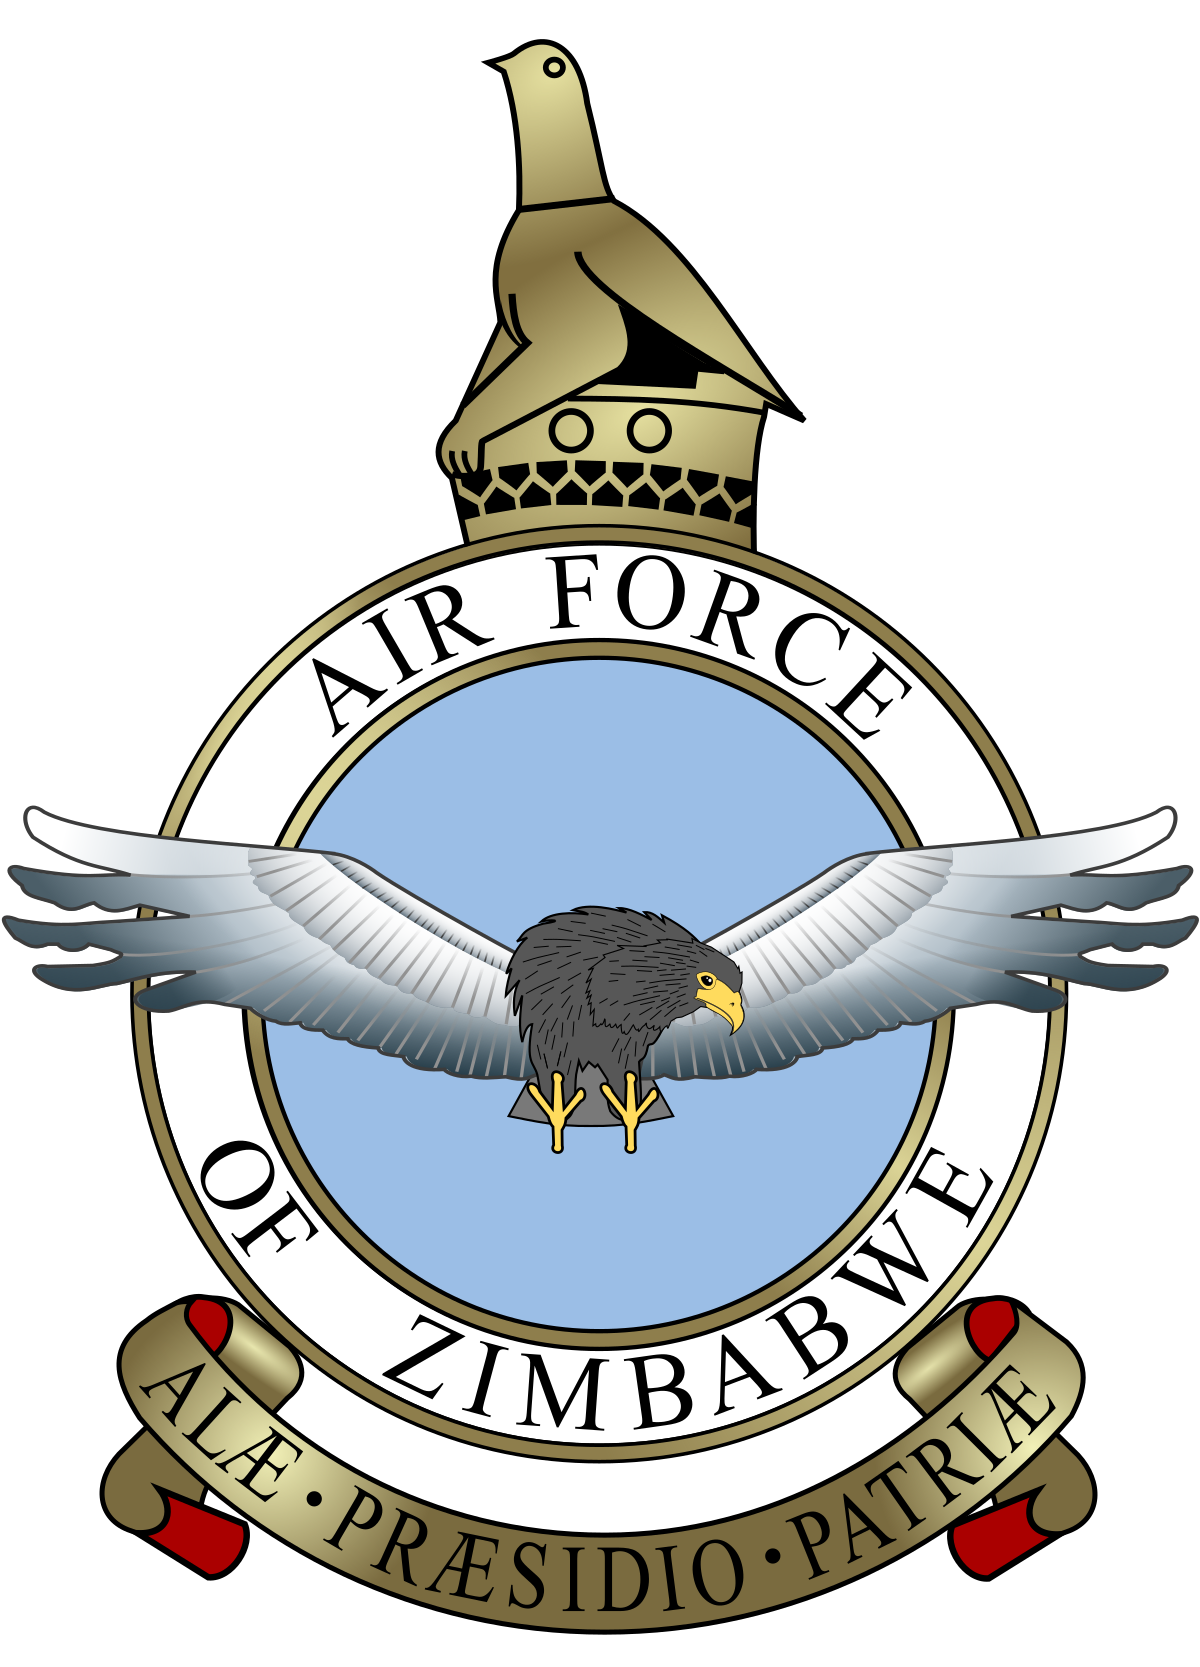 Pilot clipart airport staff. Air force of zimbabwe